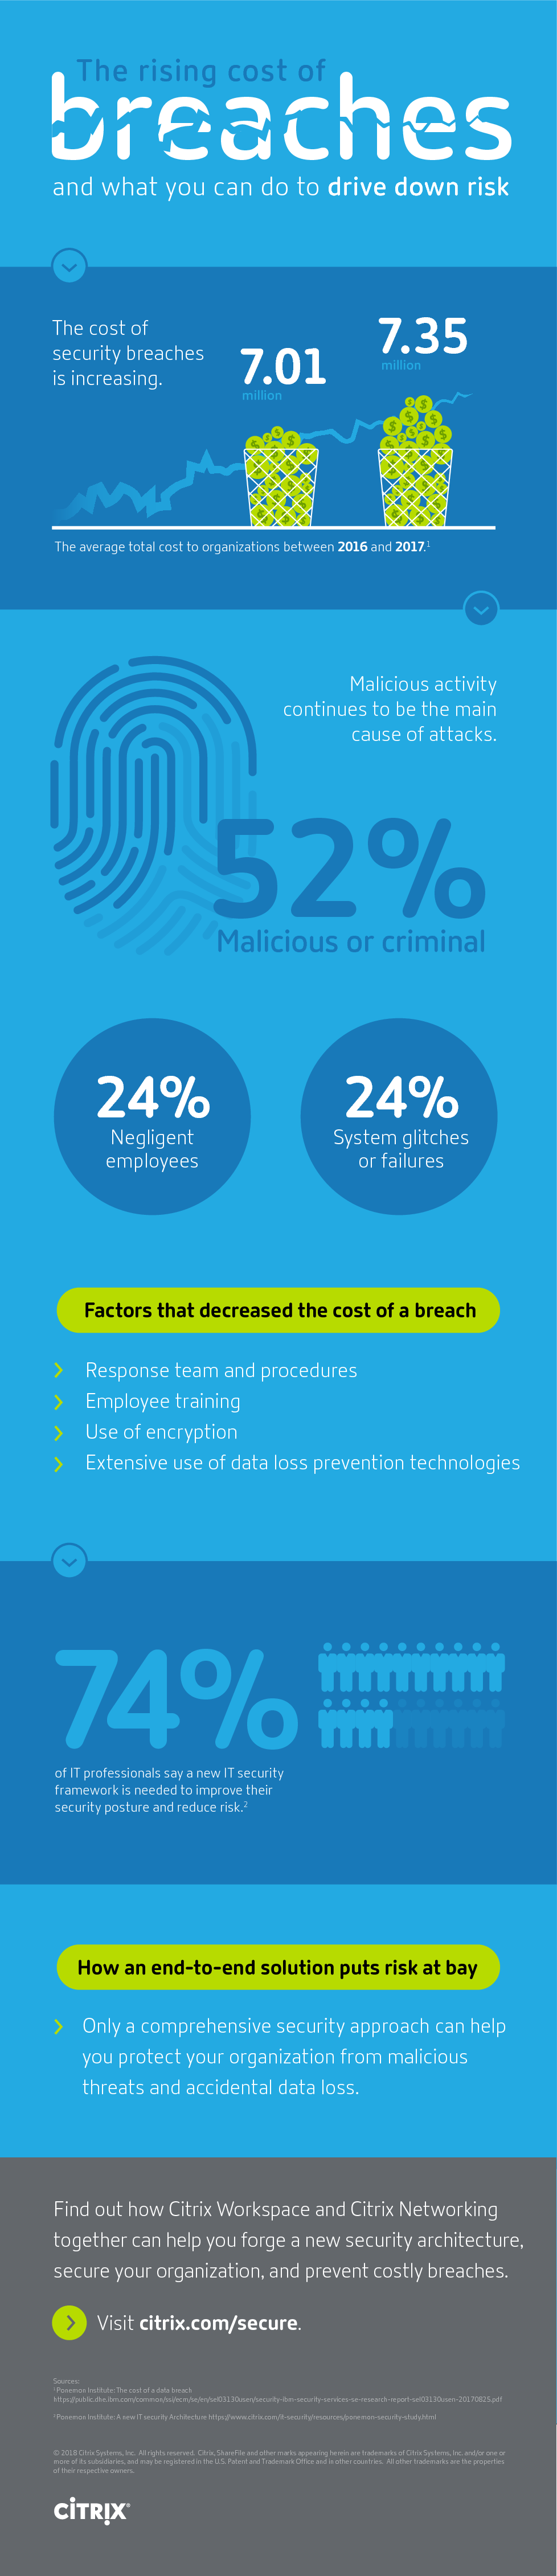 Square cropped thumb original the rising cost of breaches